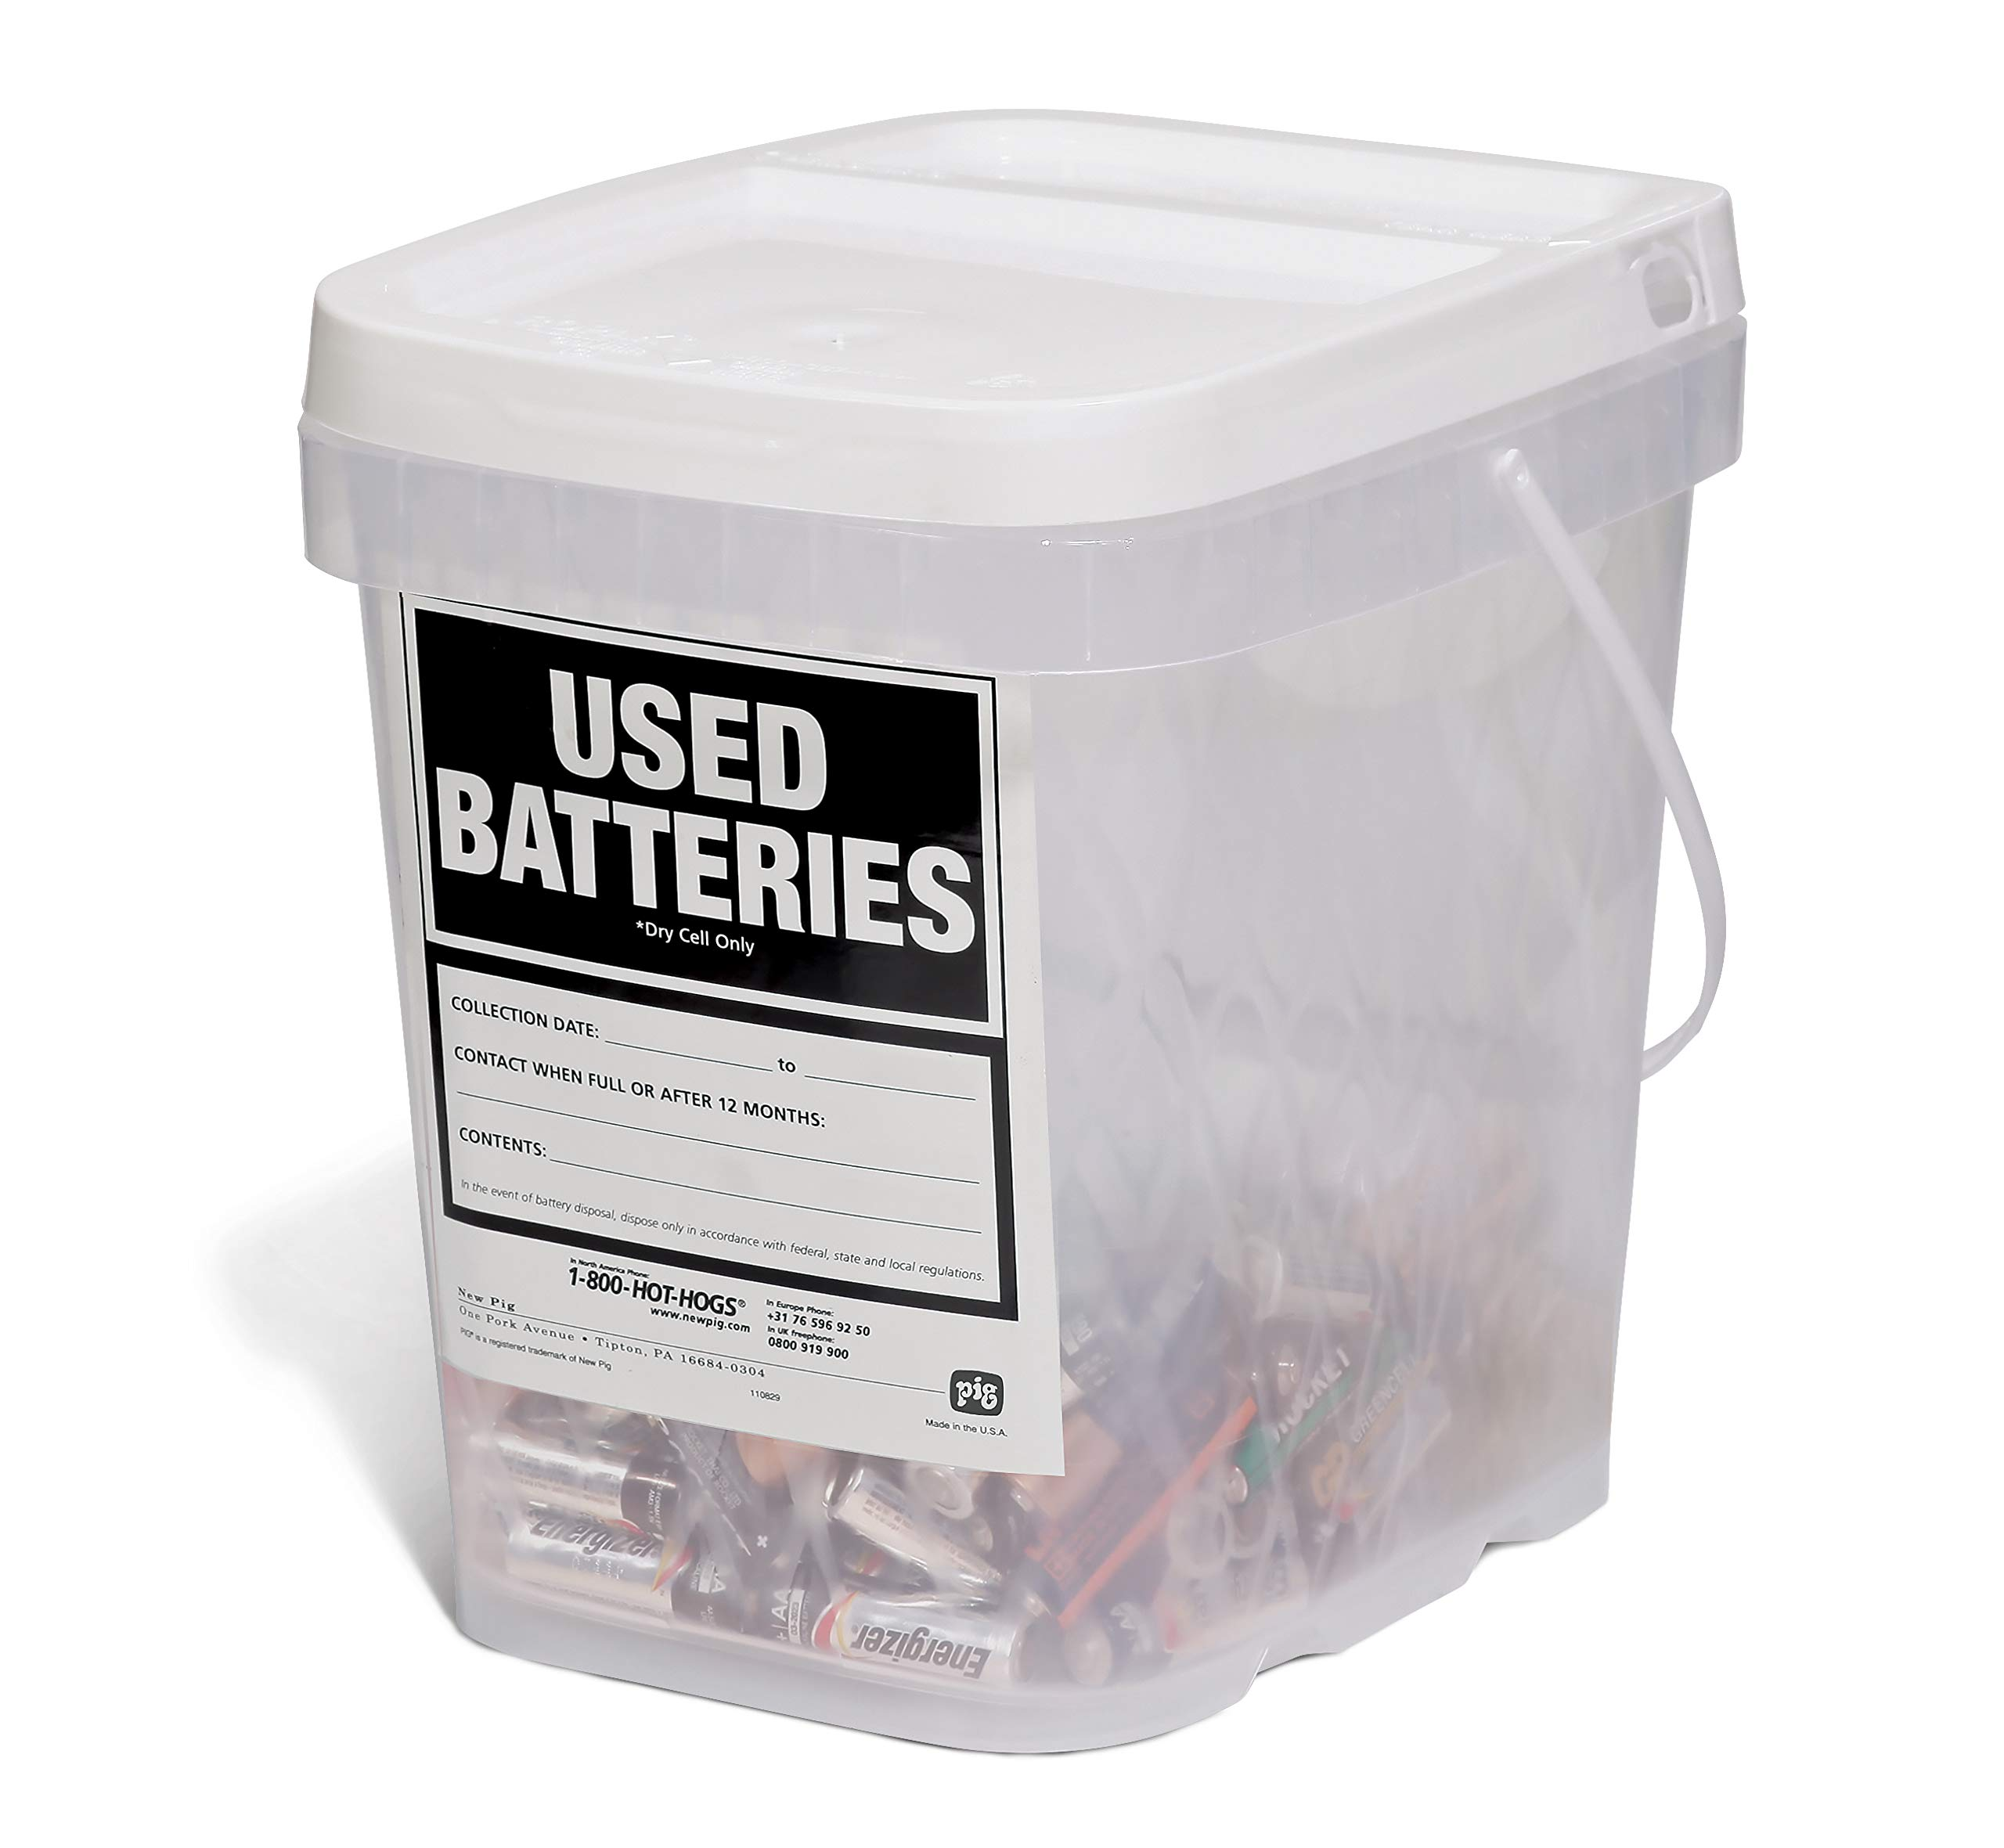 Used Battery Container by New Pig 2-Pack